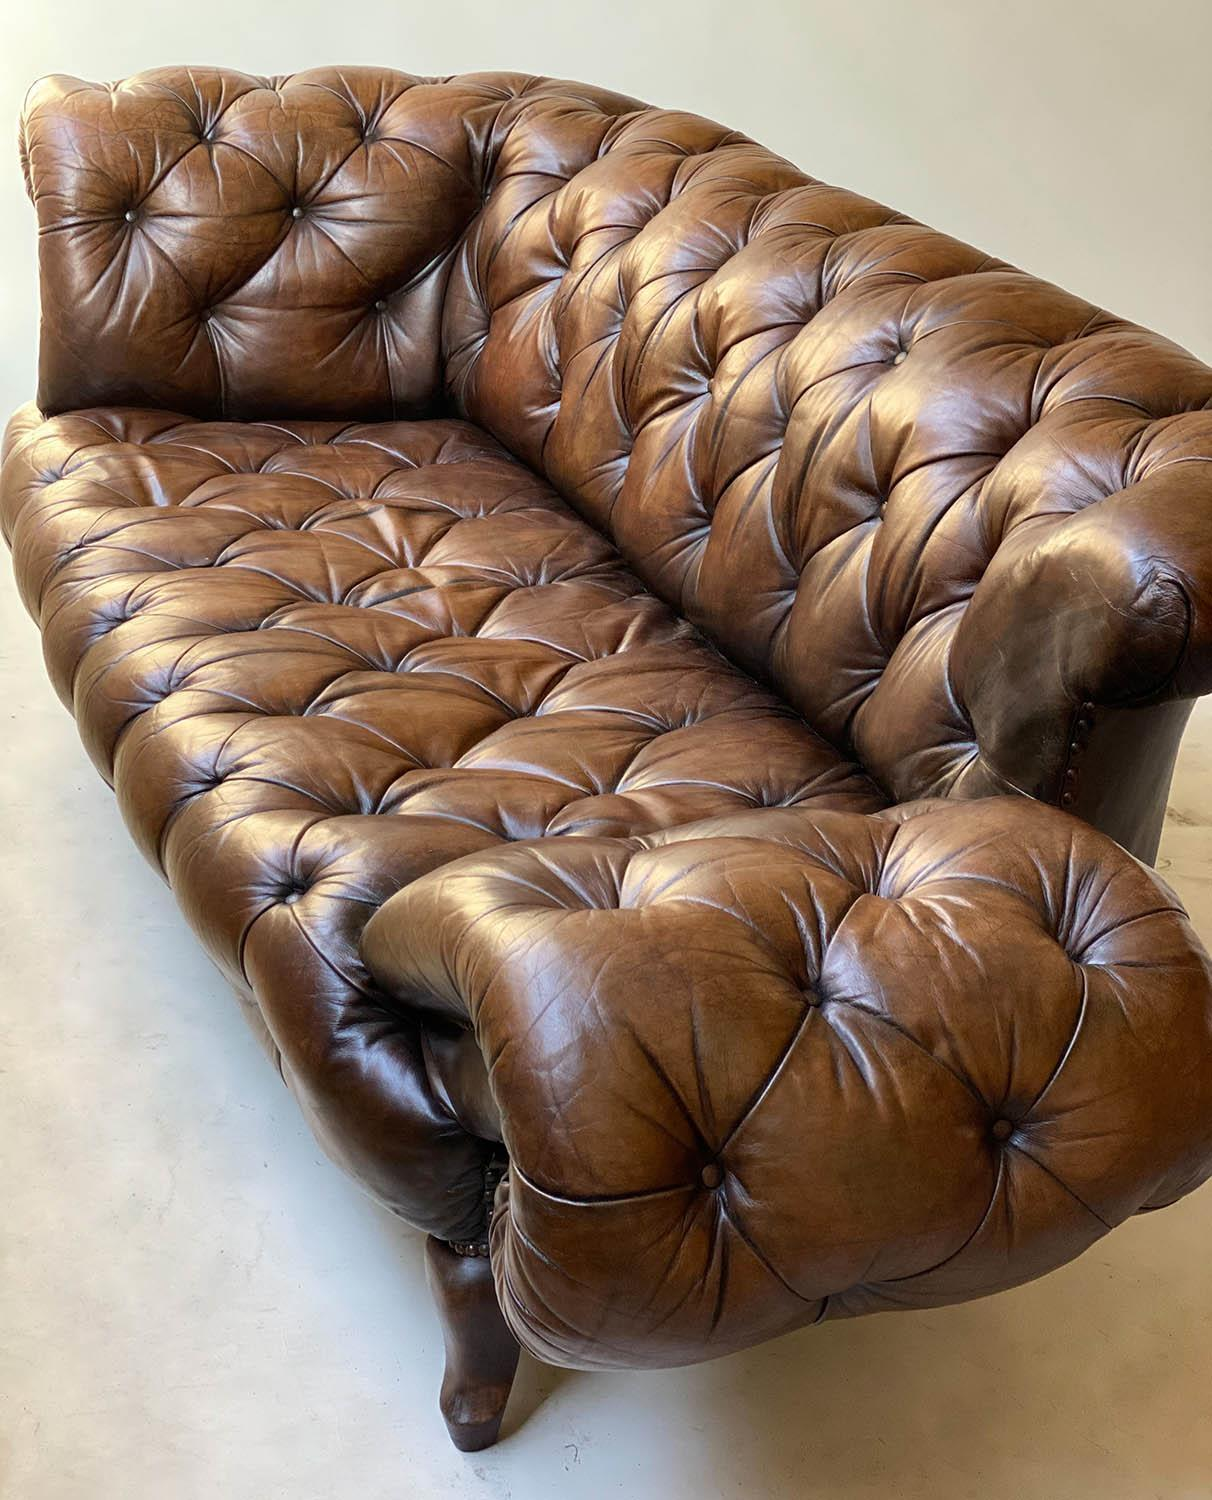 CHESTERFIELD SOFA, early 20th century Edwardian aged and faded brown leather with horsehair buttoned - Image 8 of 10